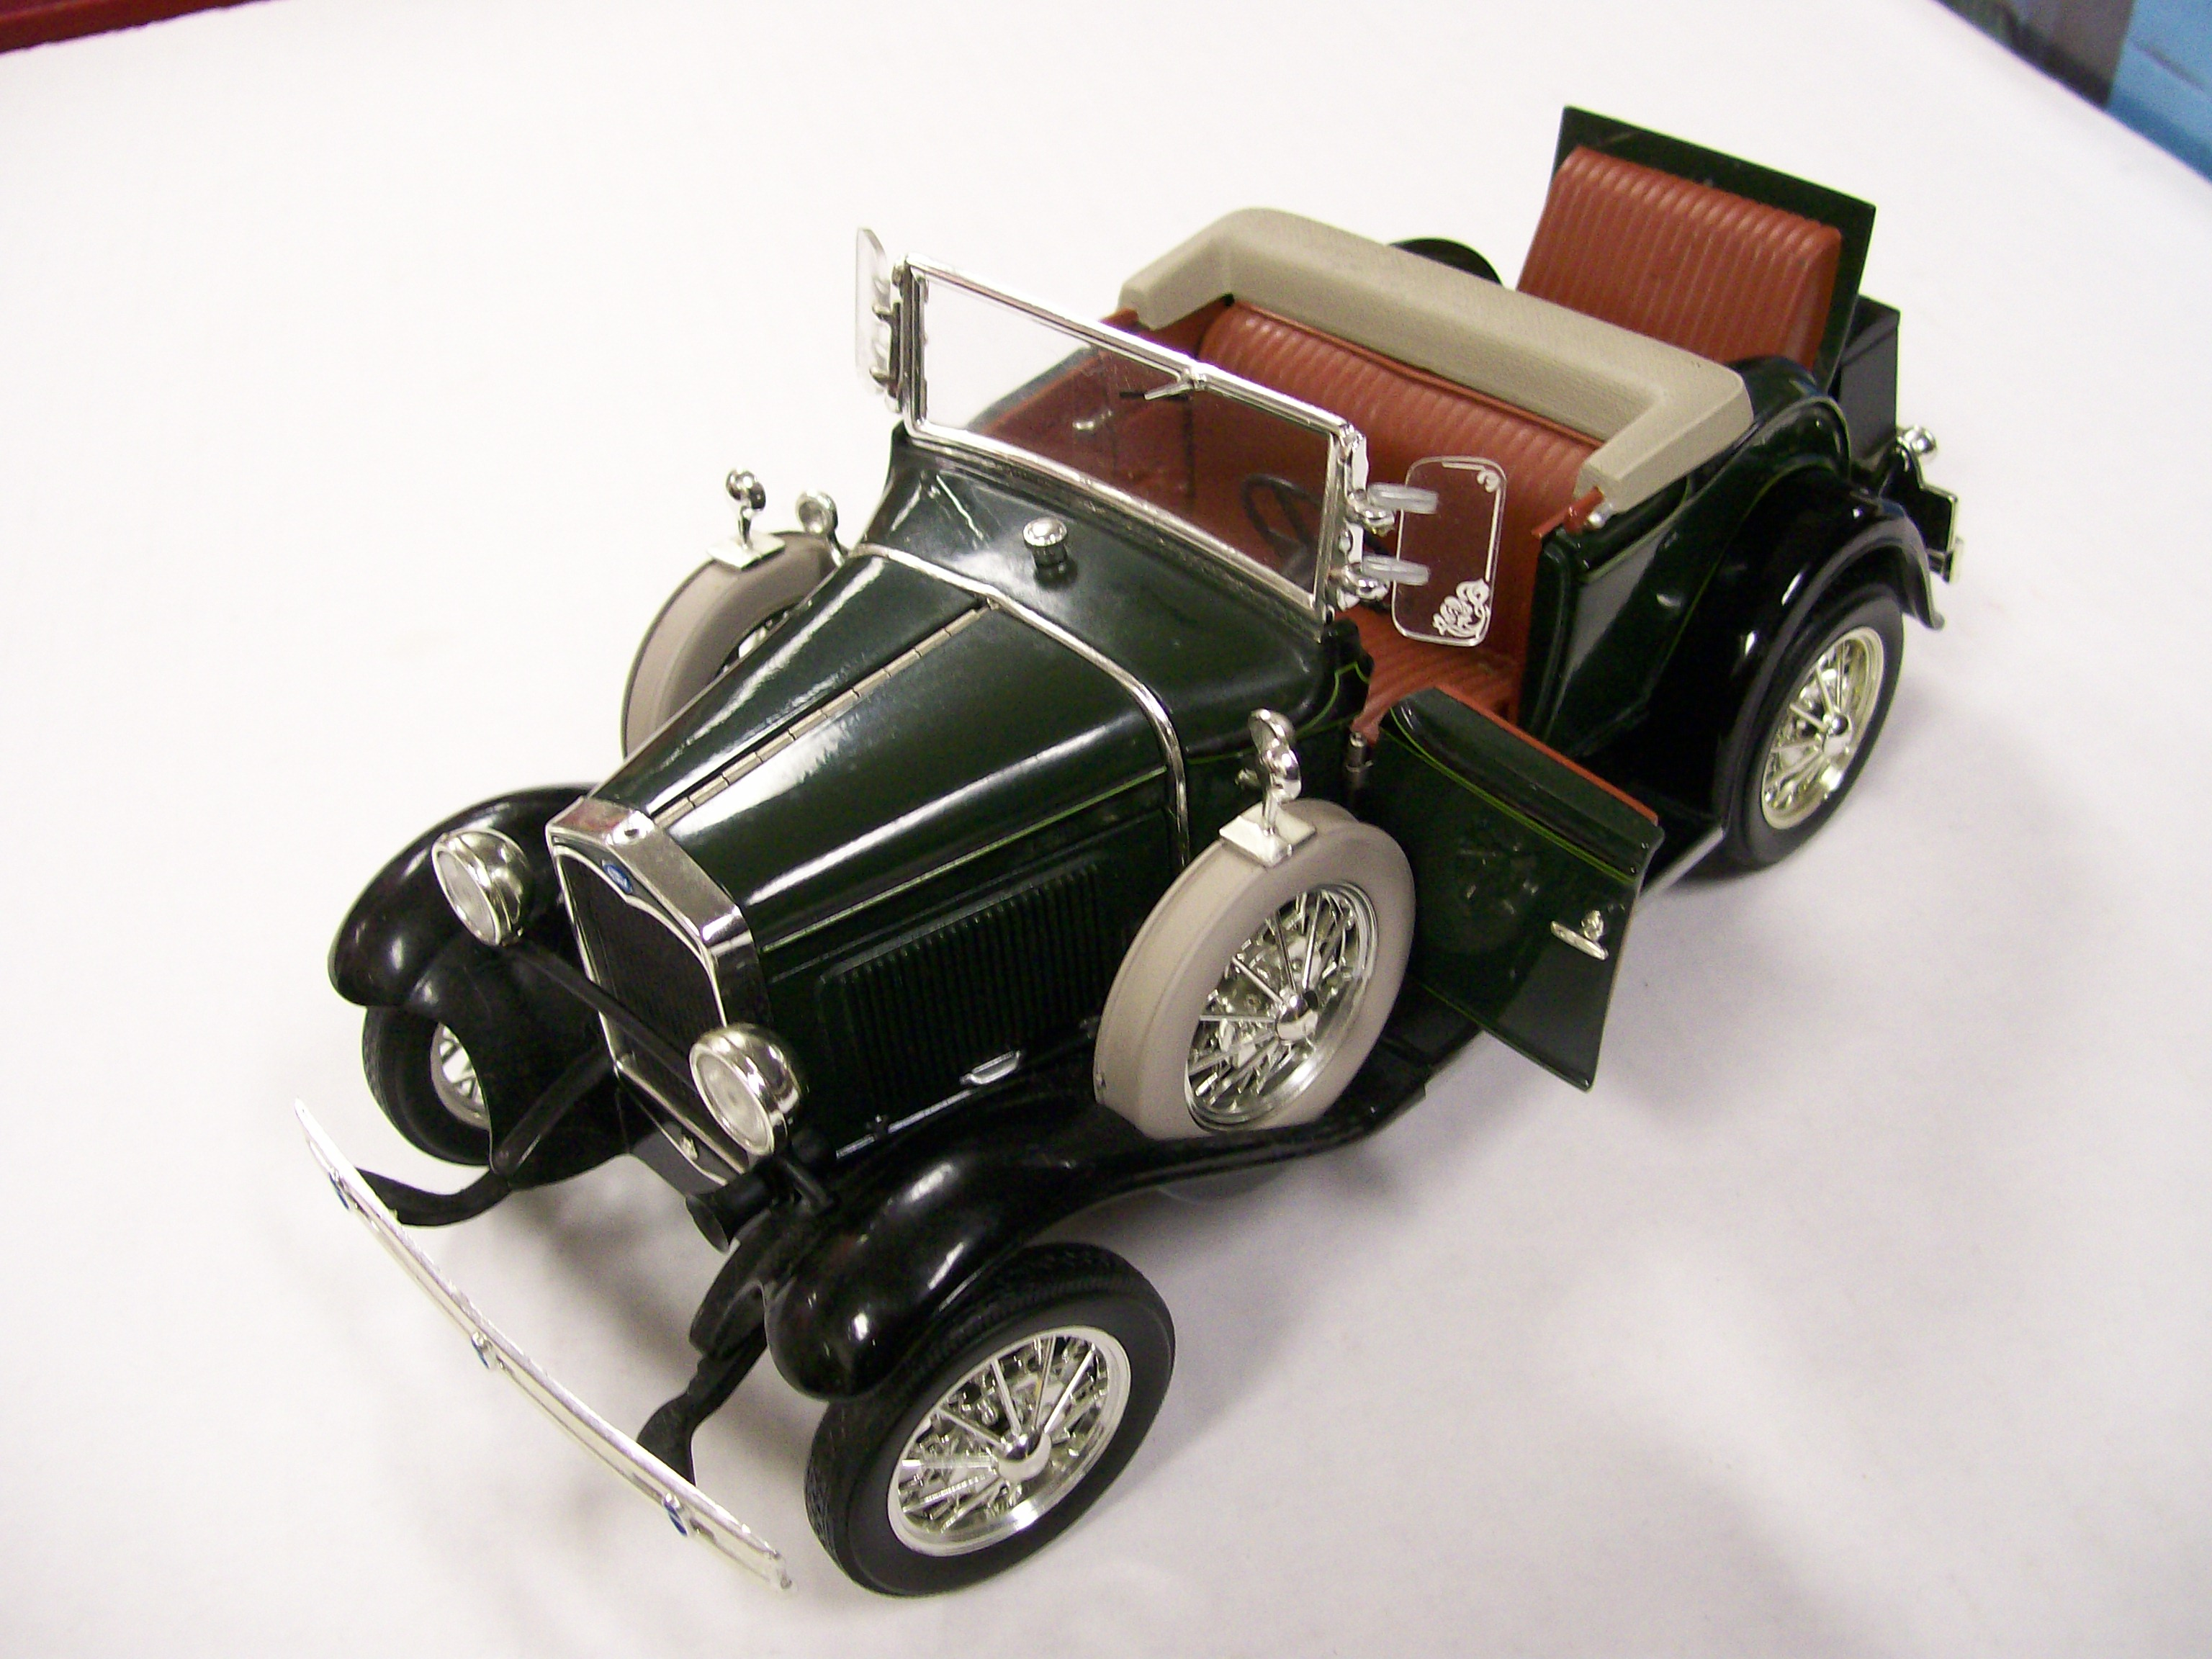 1931 Model A Ford Roadster Motor City Classics Thick Metal - $100.00 ...